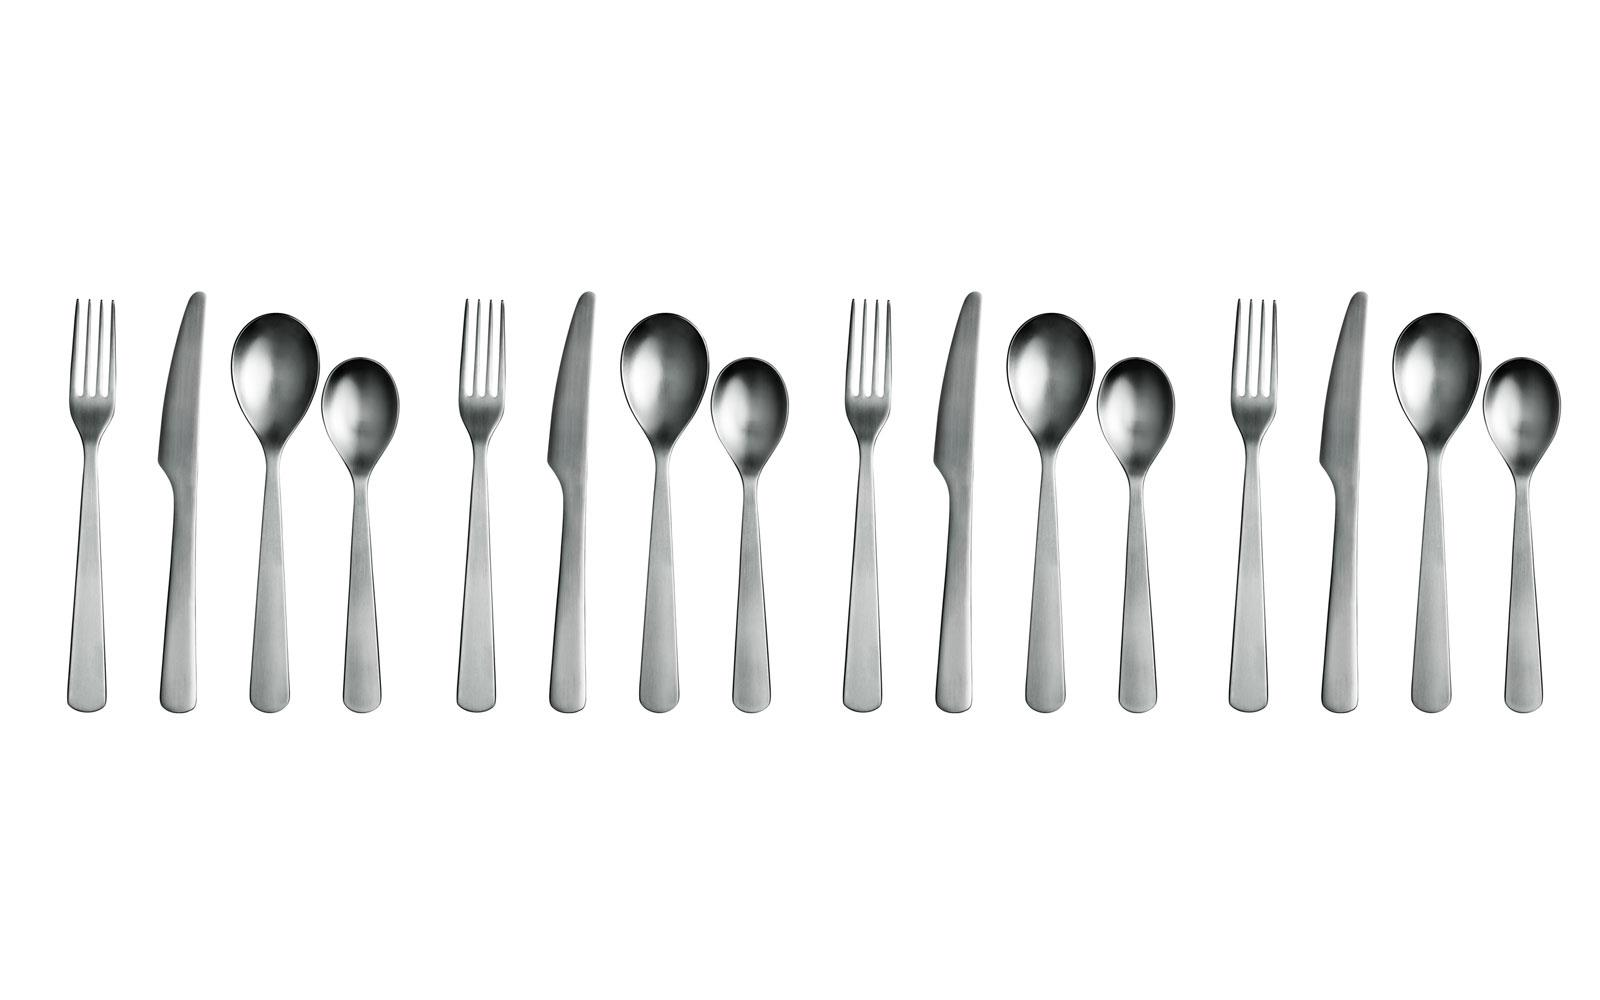 16 PCE PRESENTATION BOXED STAINLESS STEEL TABLE KITCHEN CUTLERY SET SPOON FORK